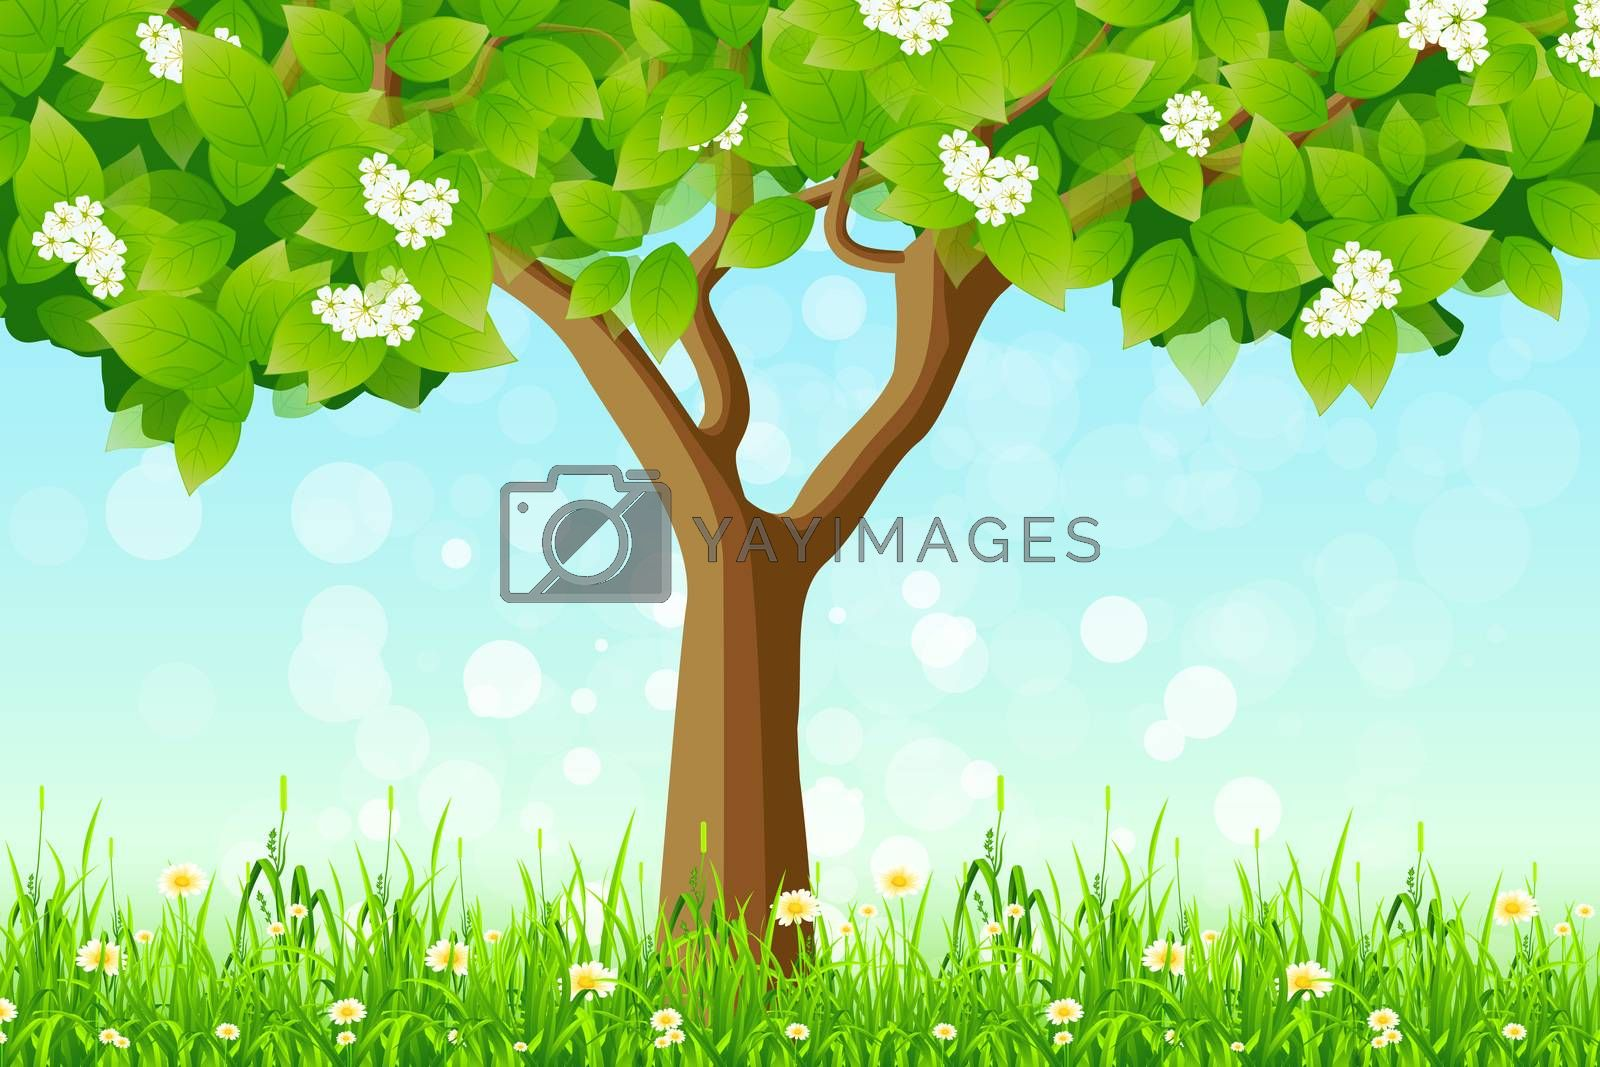 Green Tree in the Grass by WaD